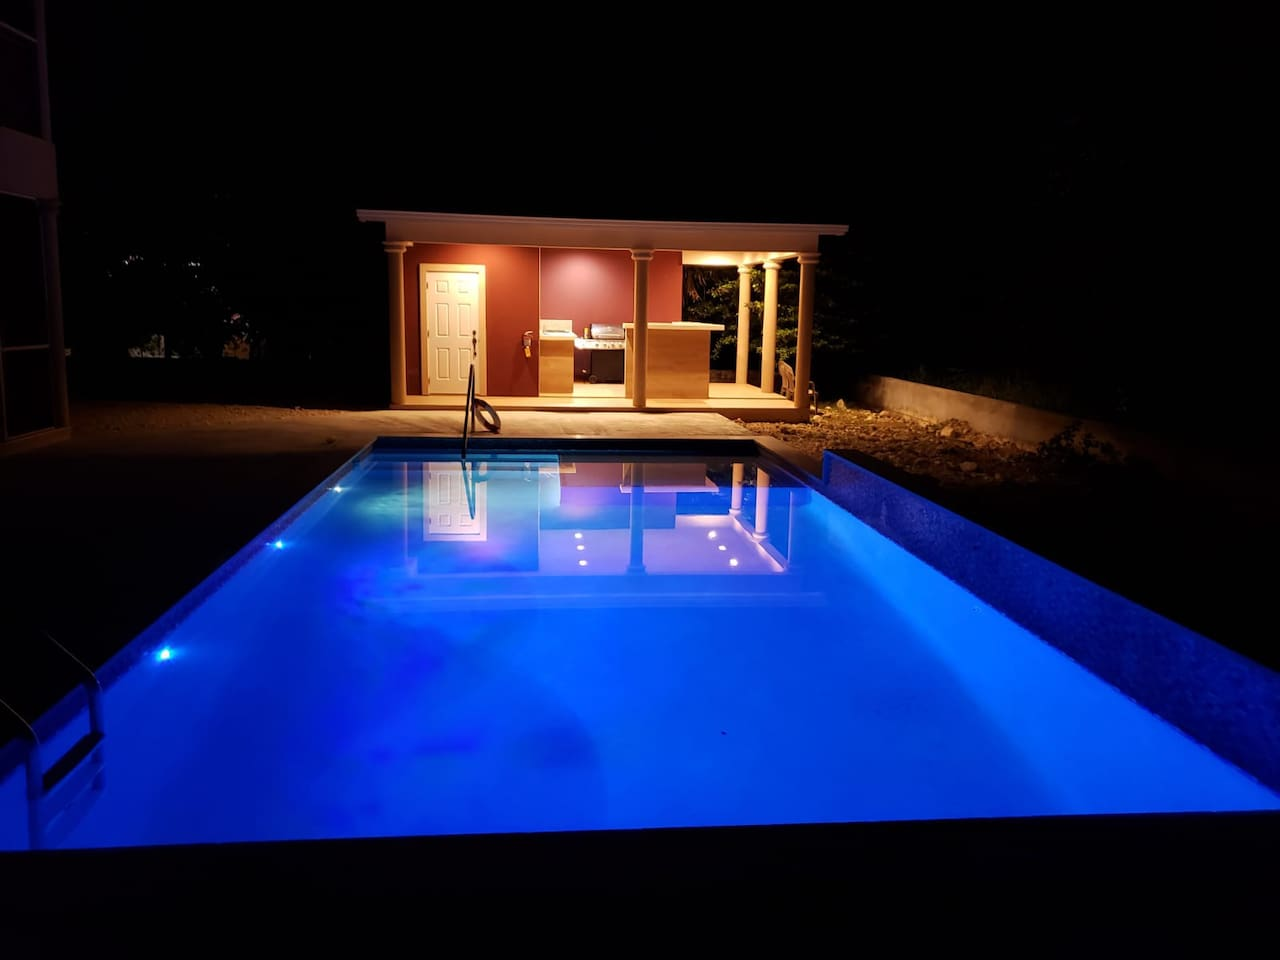 Newly built 30 X 15 ft pool with shelve and water feature. 3 to 6 feet  deep.  Gazebo is fully equipped with full bathroom and BBQ grill. Perfect for your relaxation & entertainment.  Shared with other guests